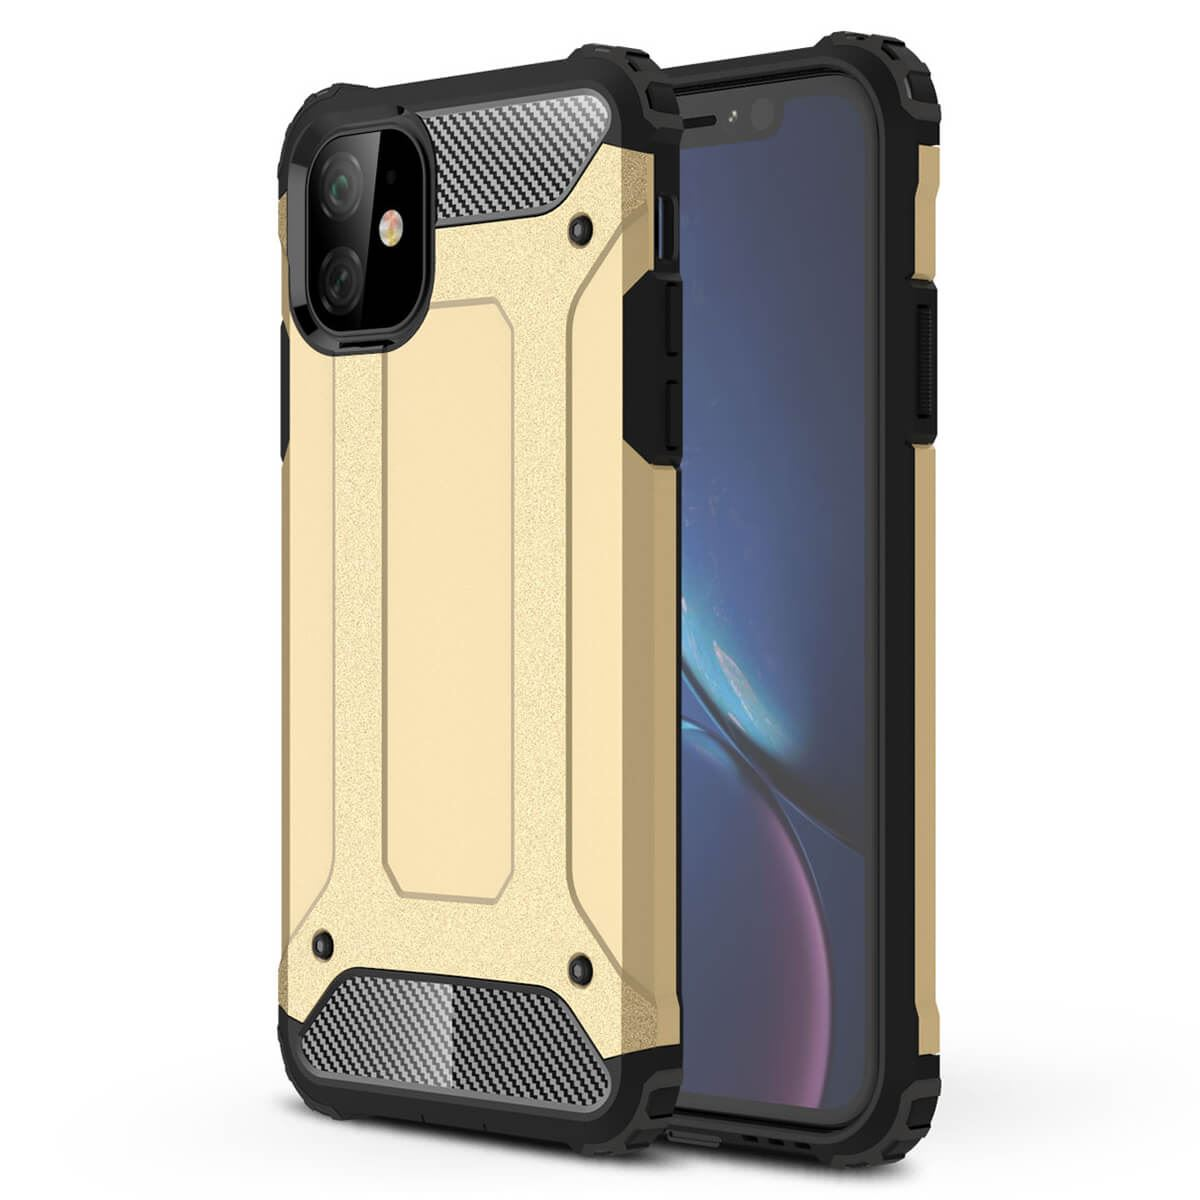 Shockproof-Bumper-Case-For-Apple-iPhone-10-X-8-7-Plus-6s-5s-Hybrid-Armor-Rugged thumbnail 9